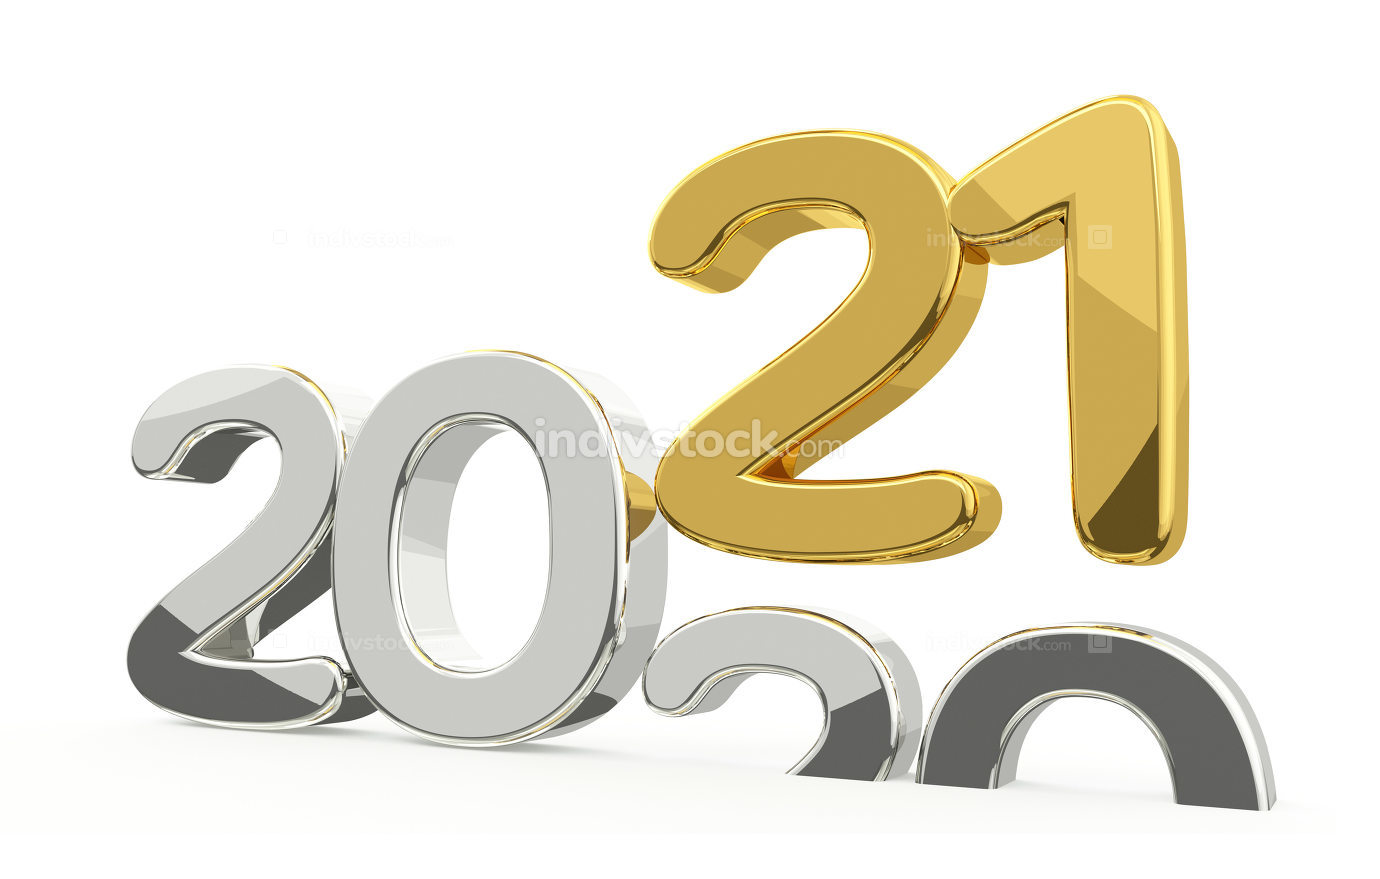 new year 2021 and 2020 golden 3d render